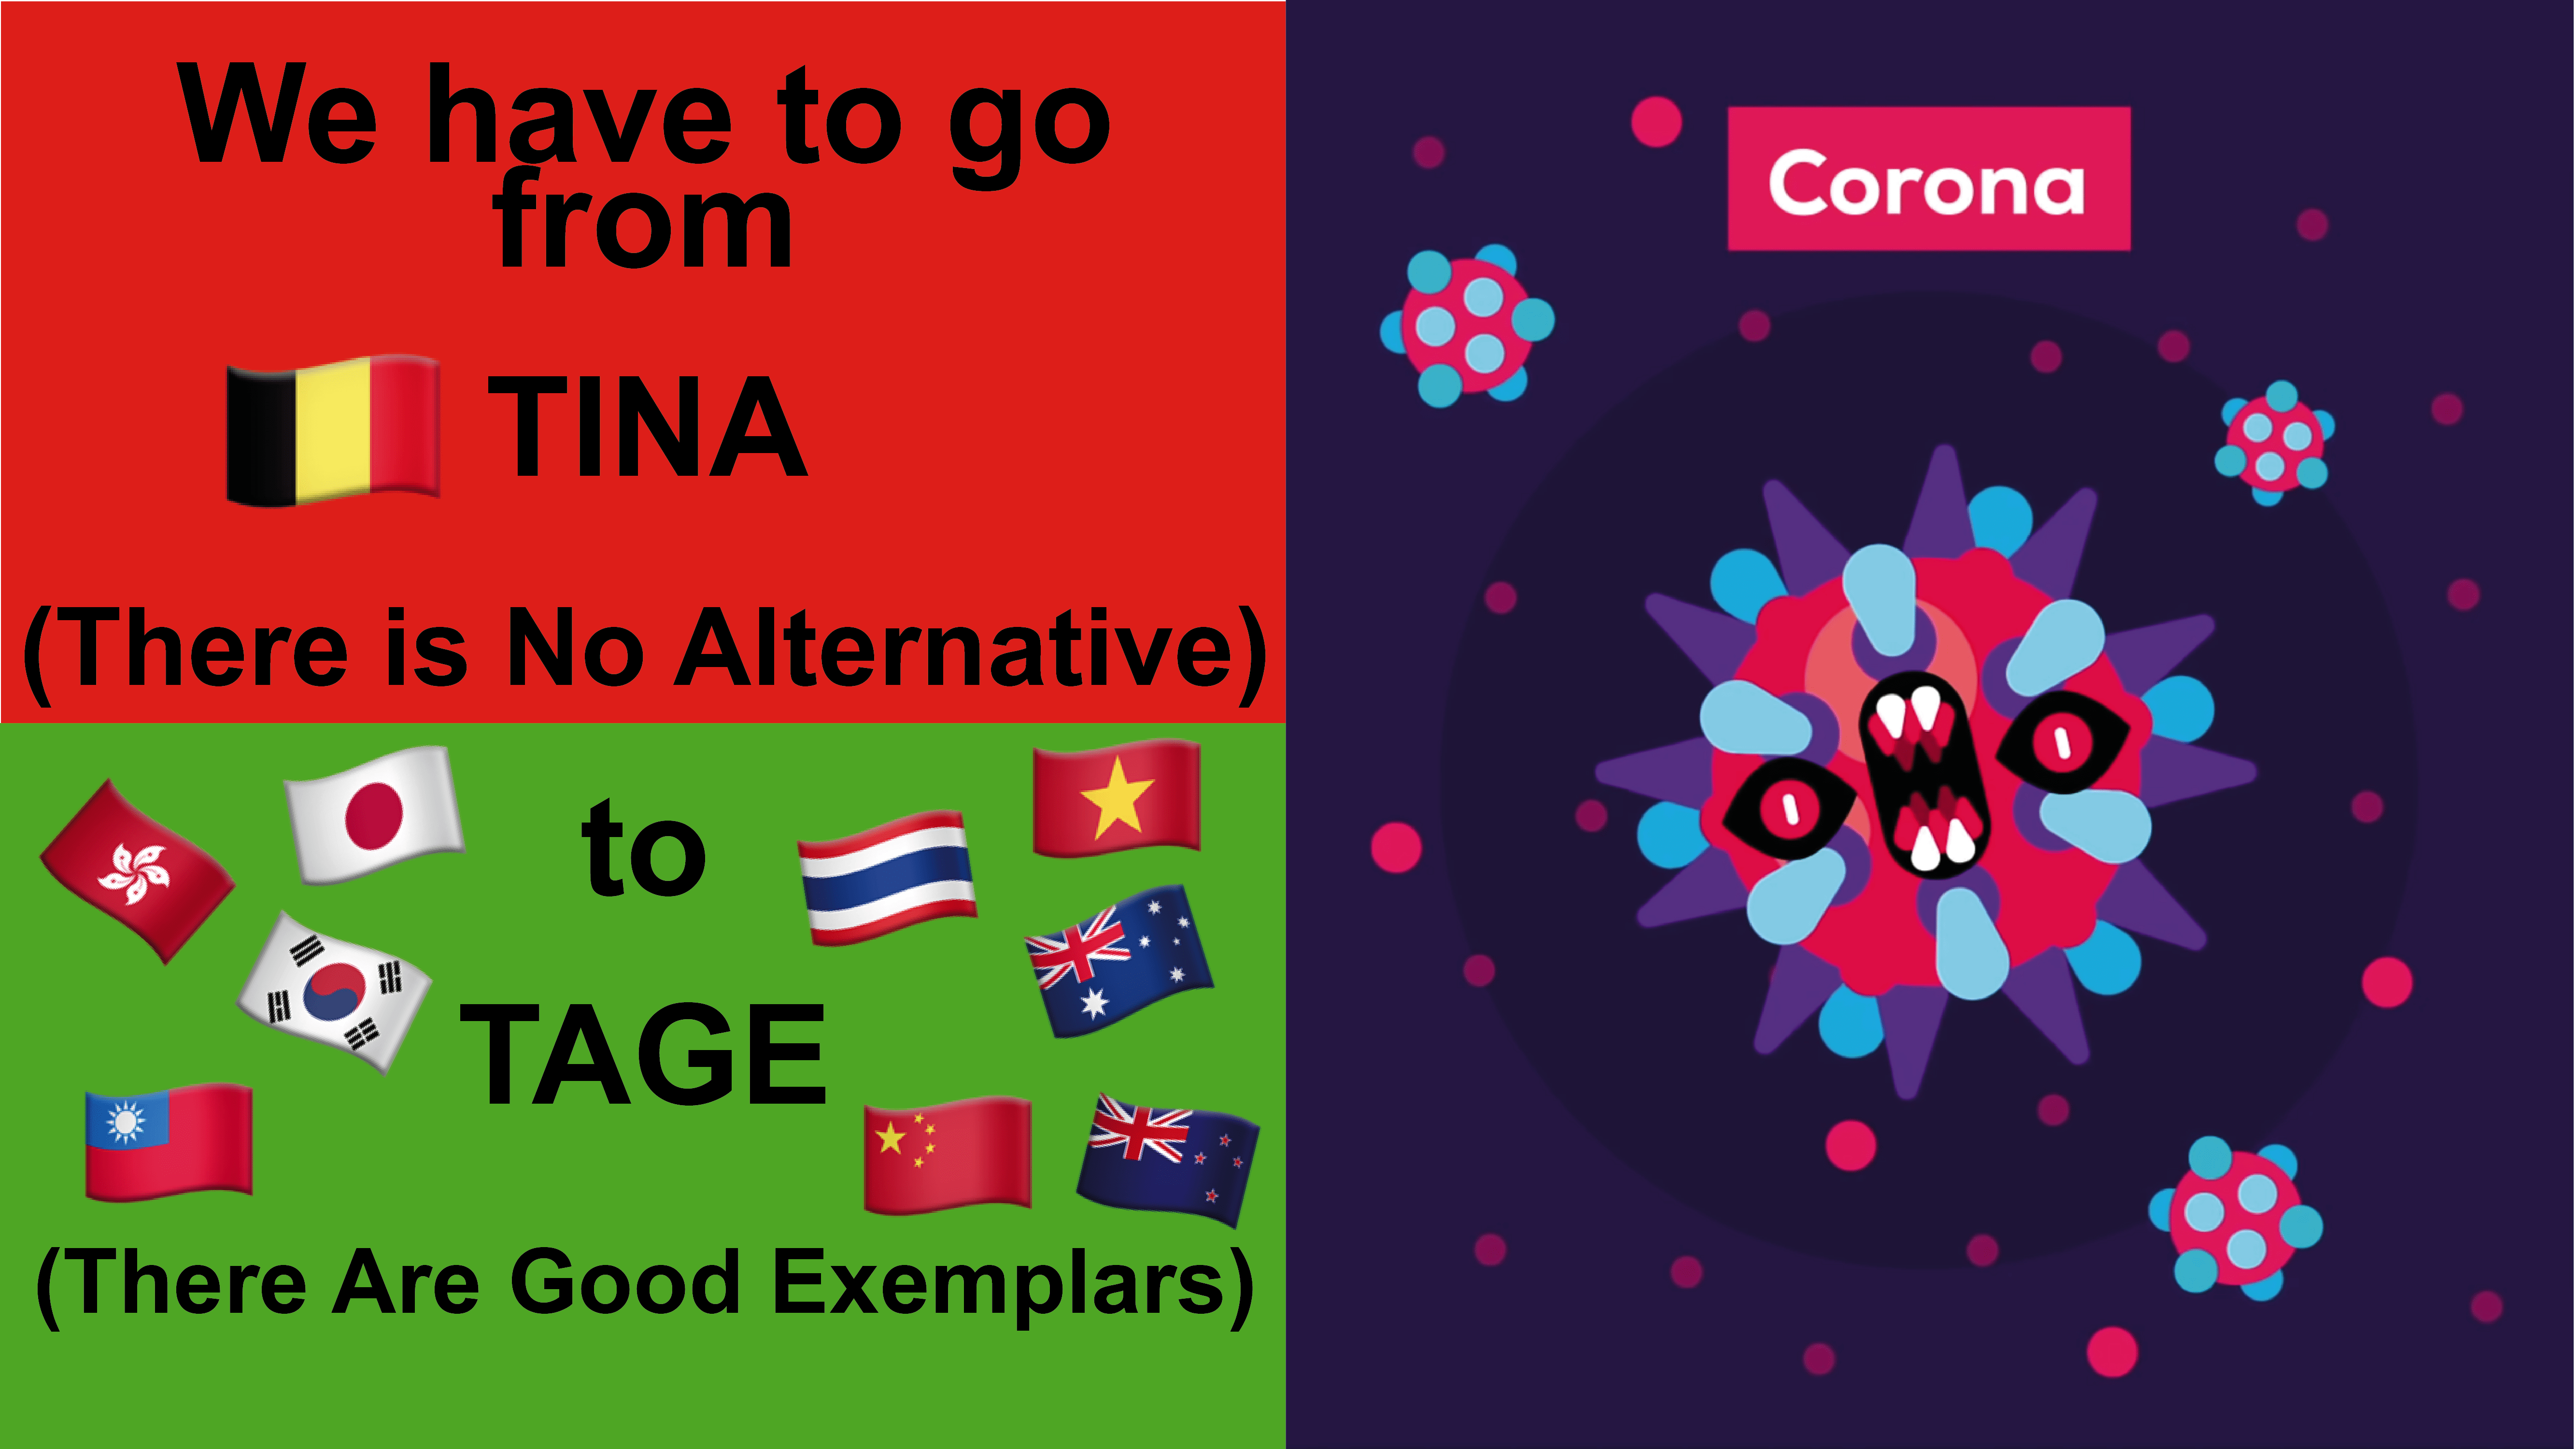 Corona: TINA to TAGE - We moeten gaan van TINA (There Is No Alternative) naar TAGE (There Are Good Exemplars)